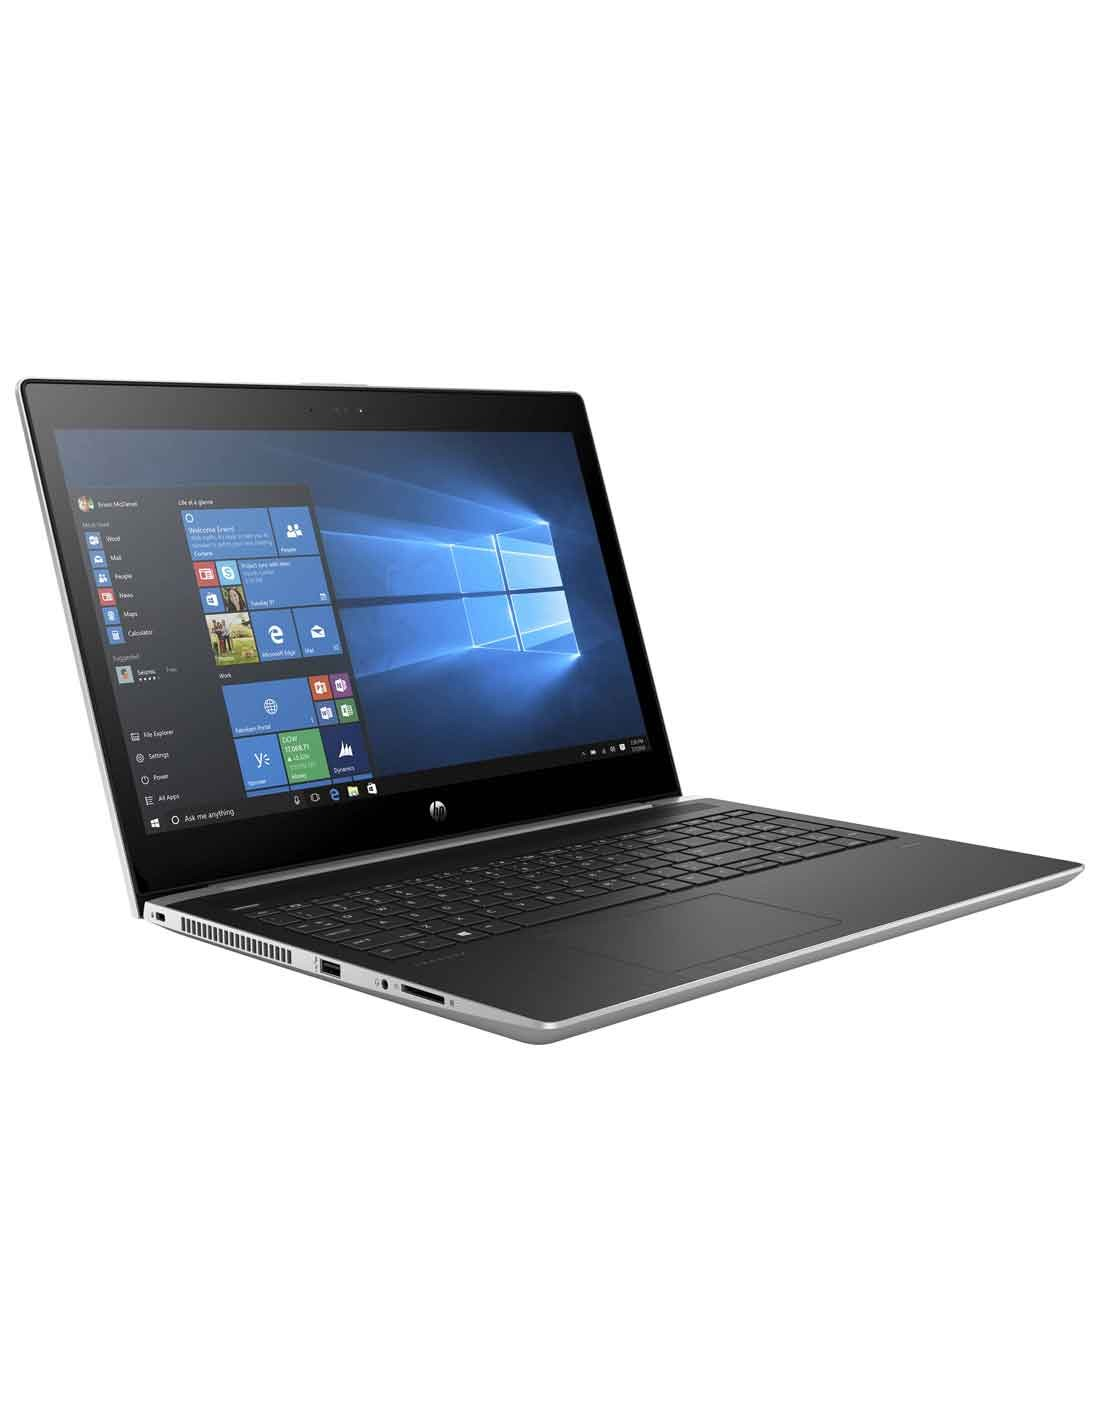 HP ProBook 450 G5 Notebook Core i5 at the cheapest price